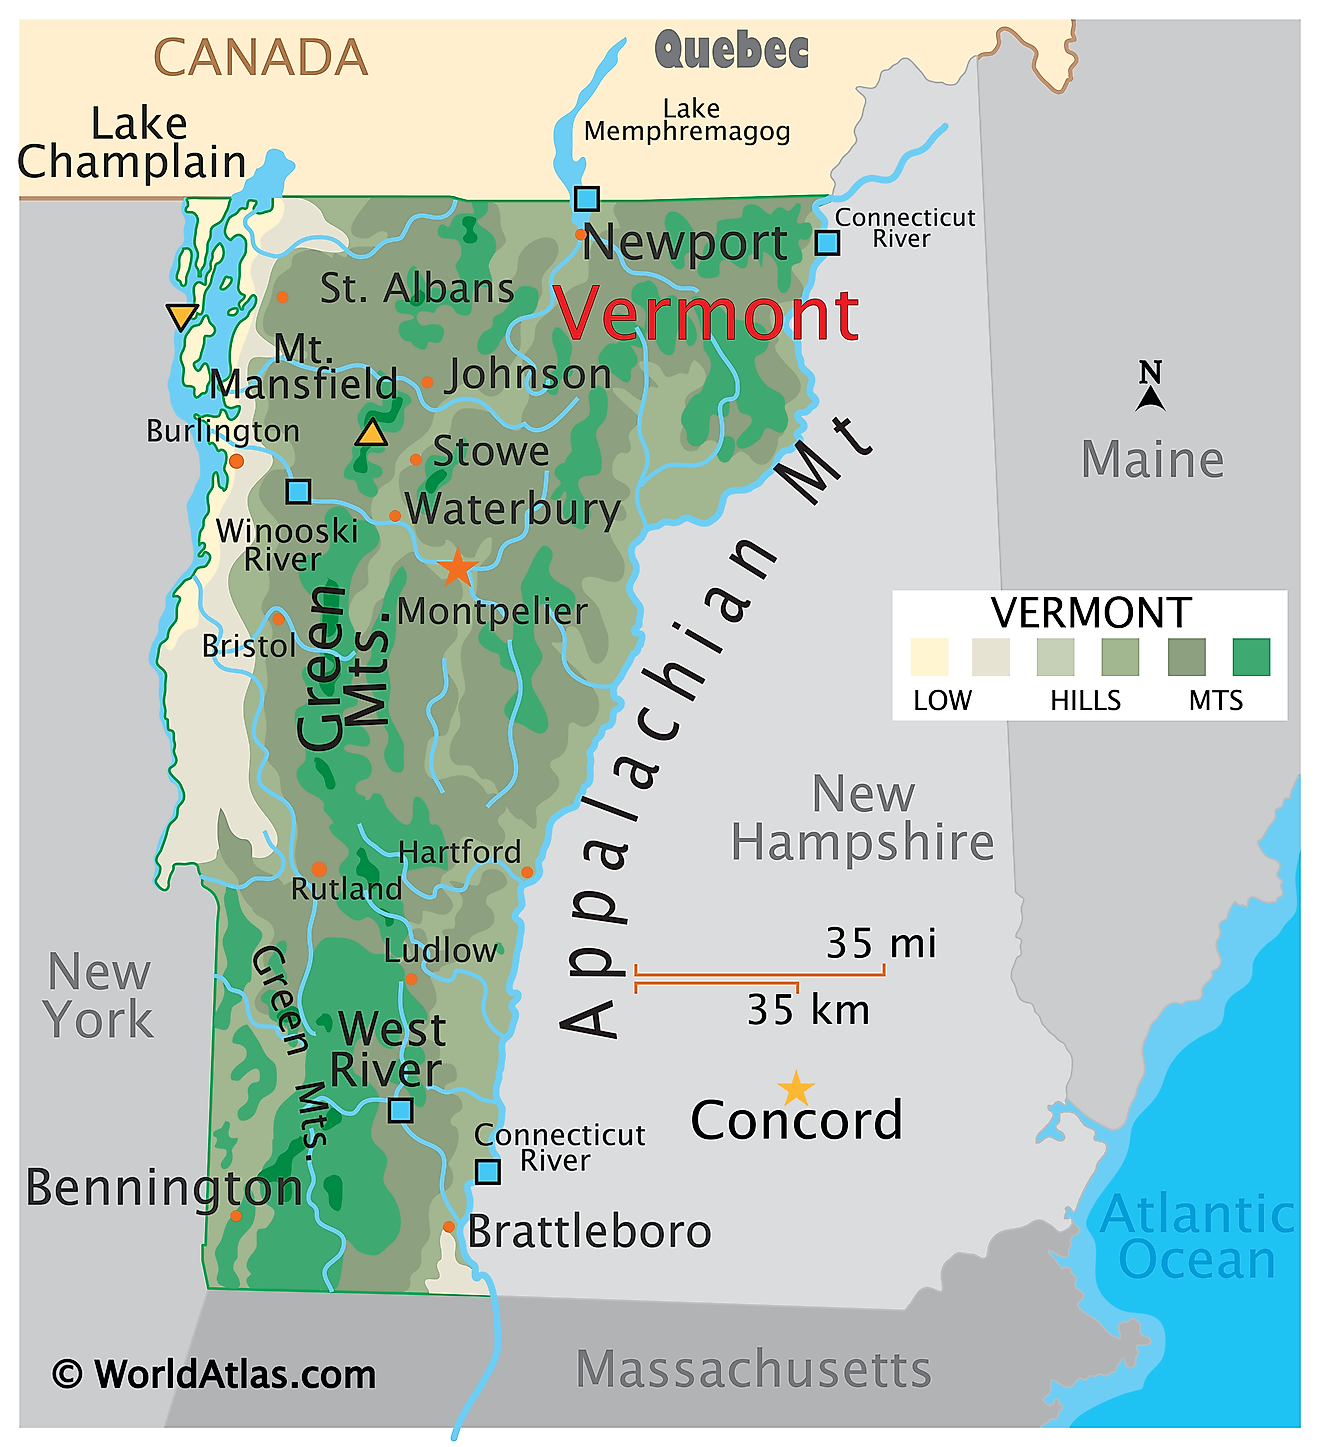 Physical Map of Vermont. It shows the physical features of Vermont including its mountain ranges, rivers and major lakes.